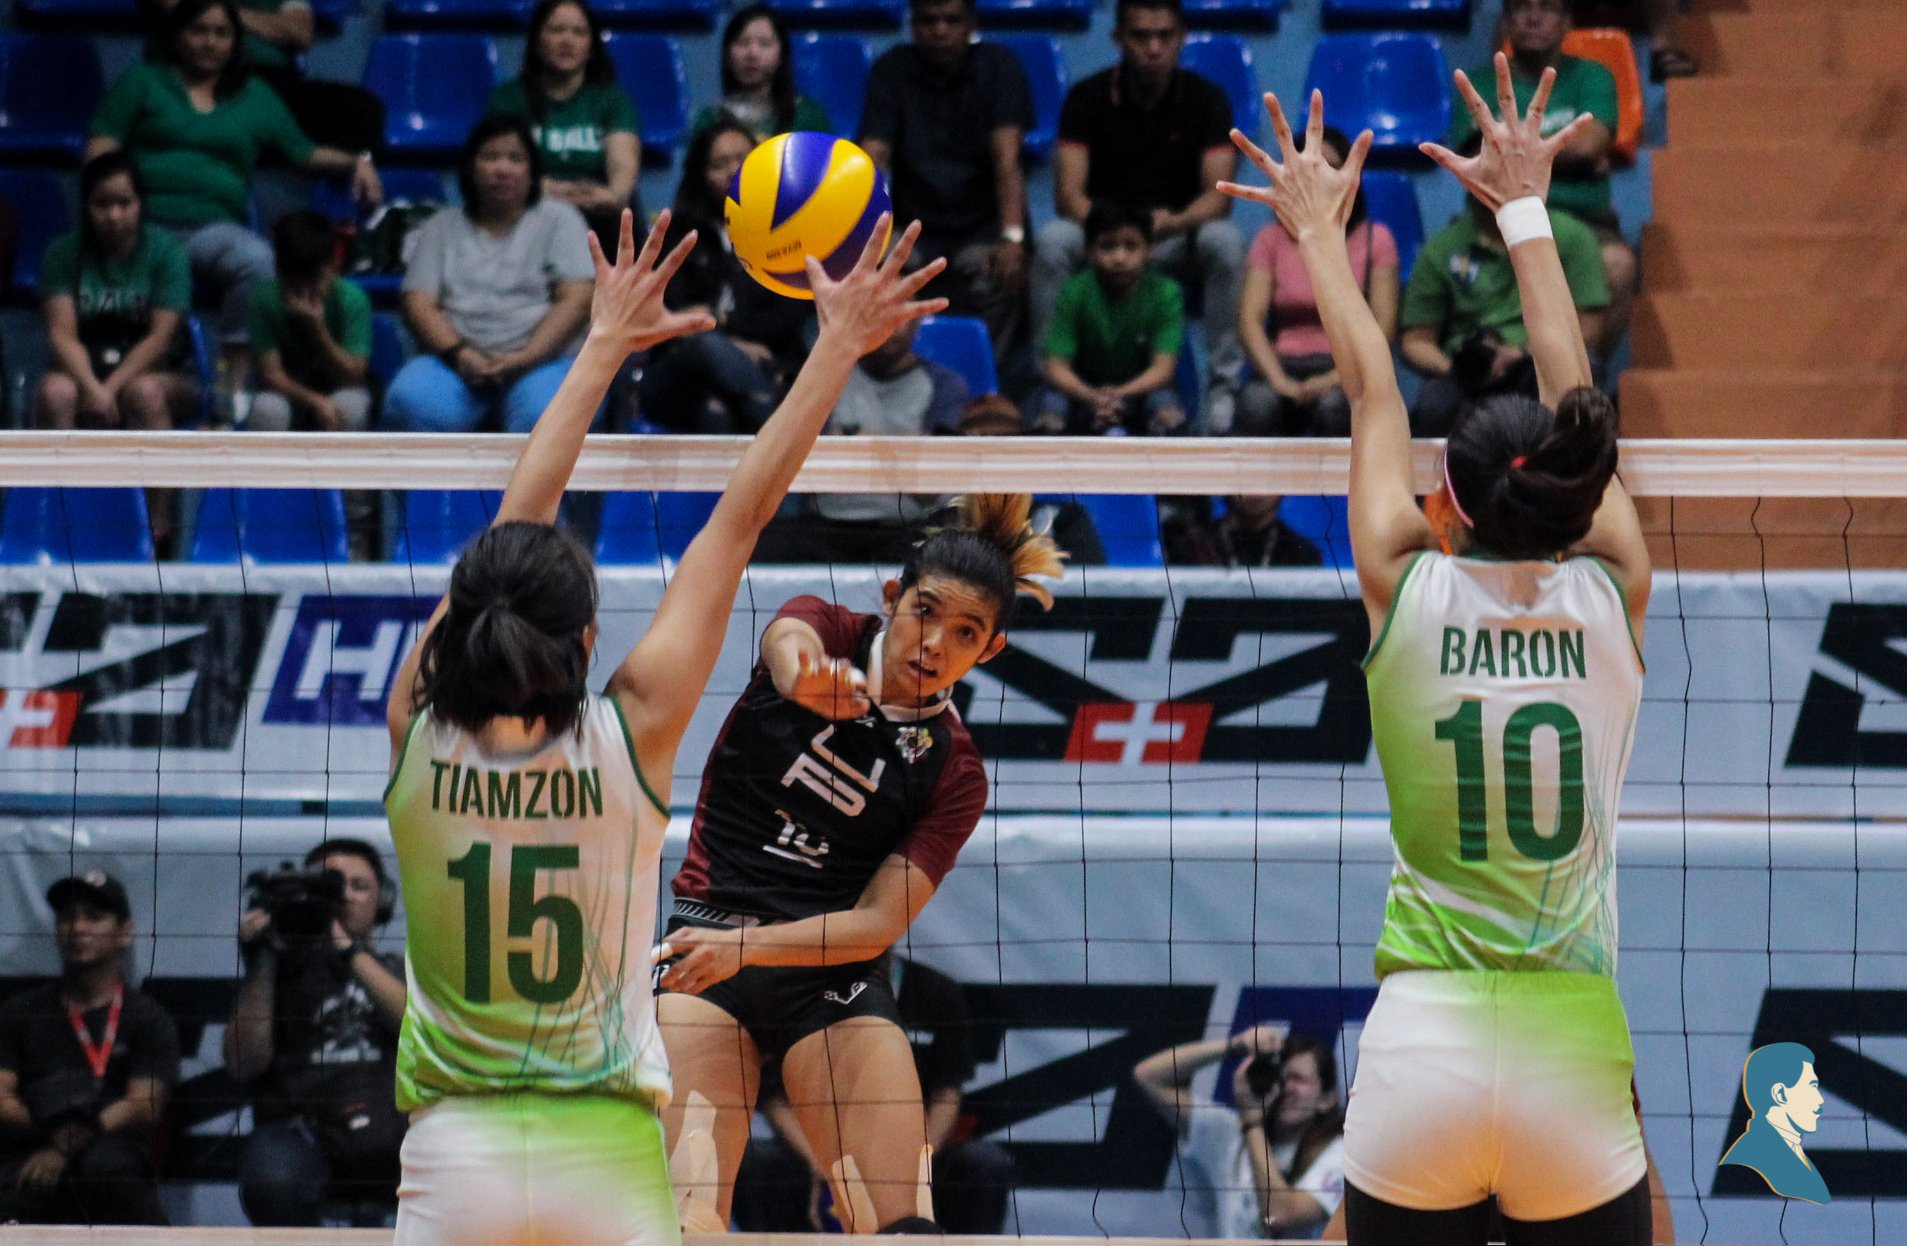 Lady Maroons suffer DLSU blowout